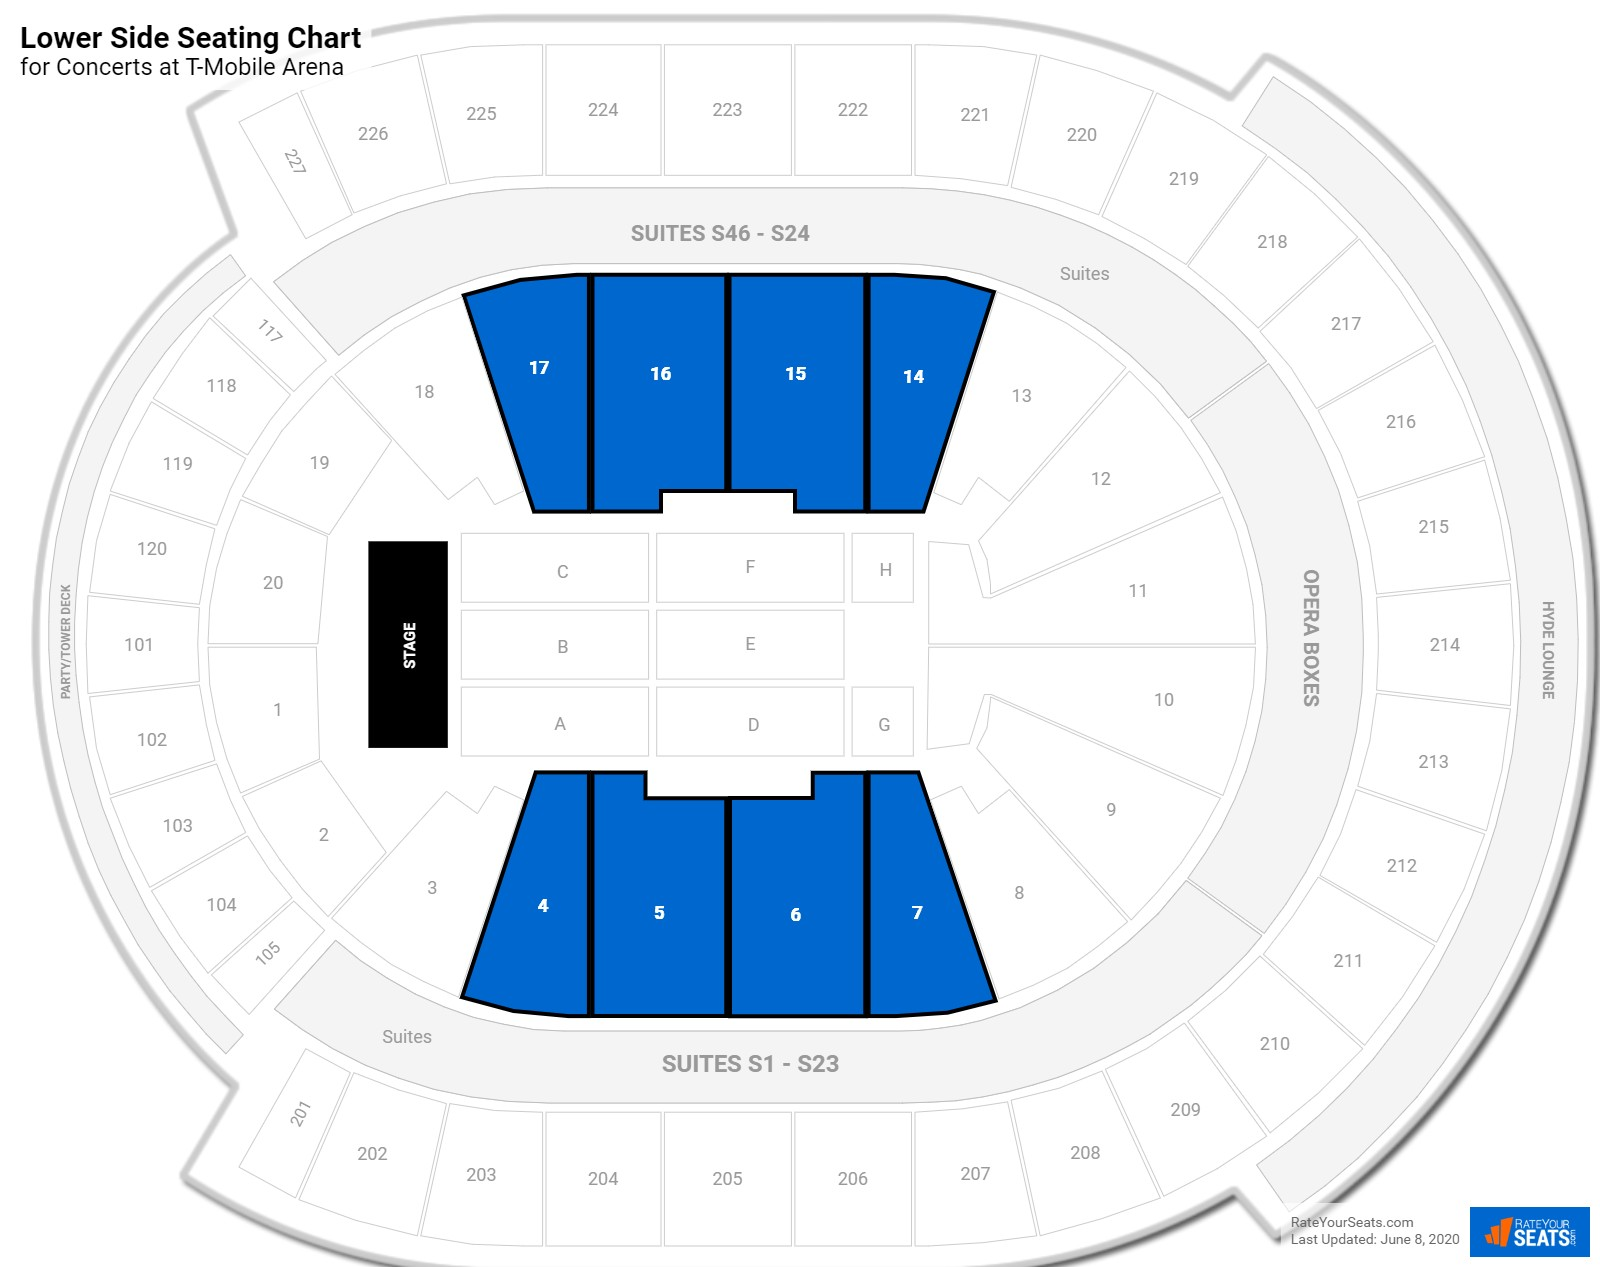 T-Mobile Arena Lower Side seating chart